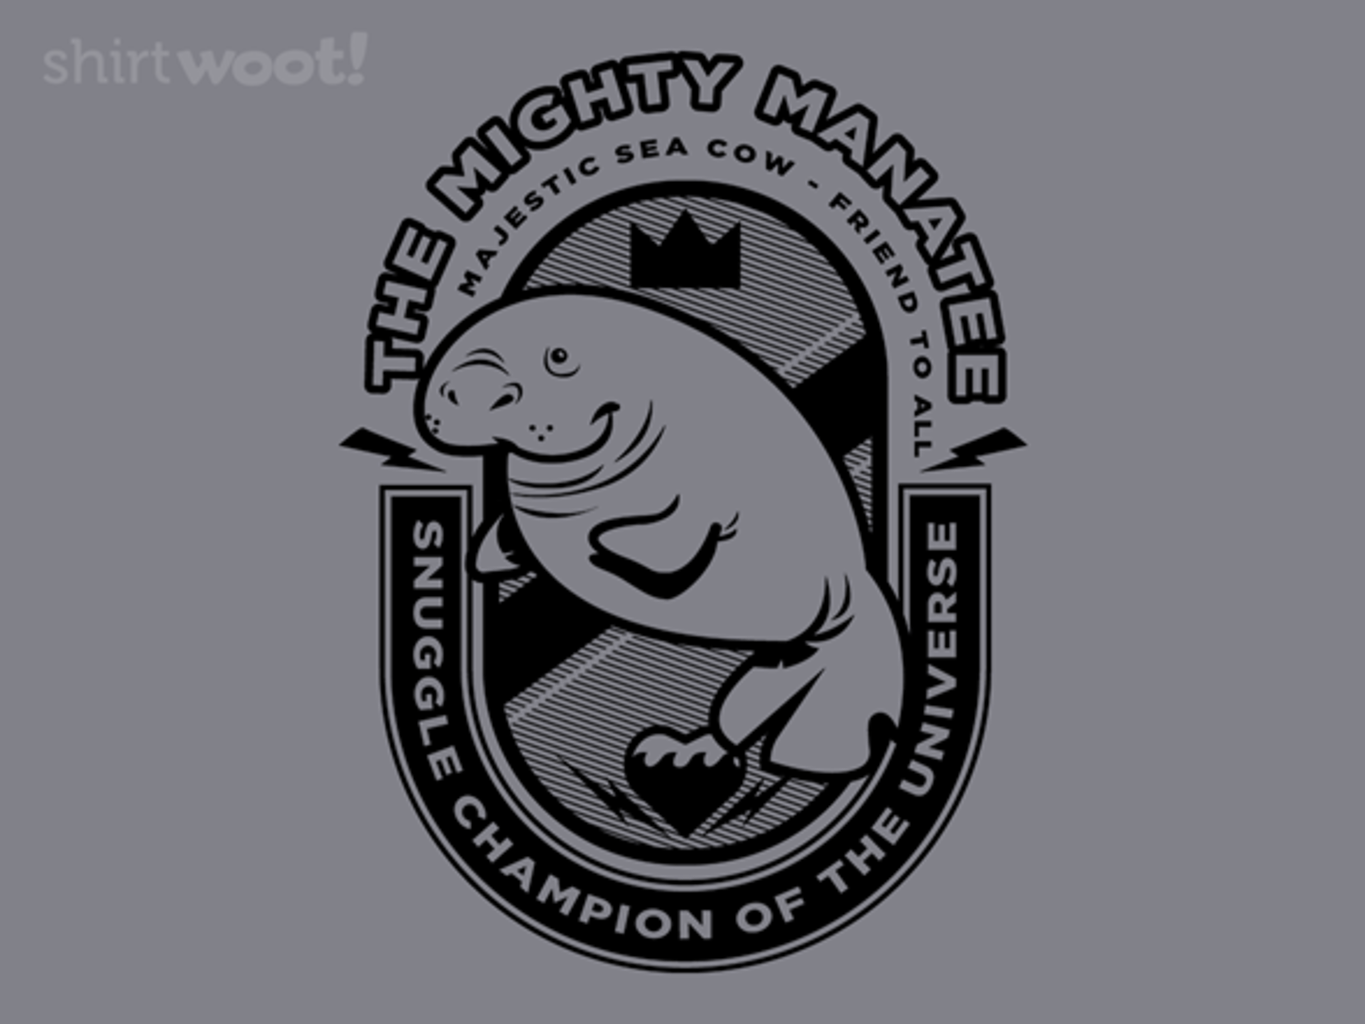 Woot!: The Mighty Manatee